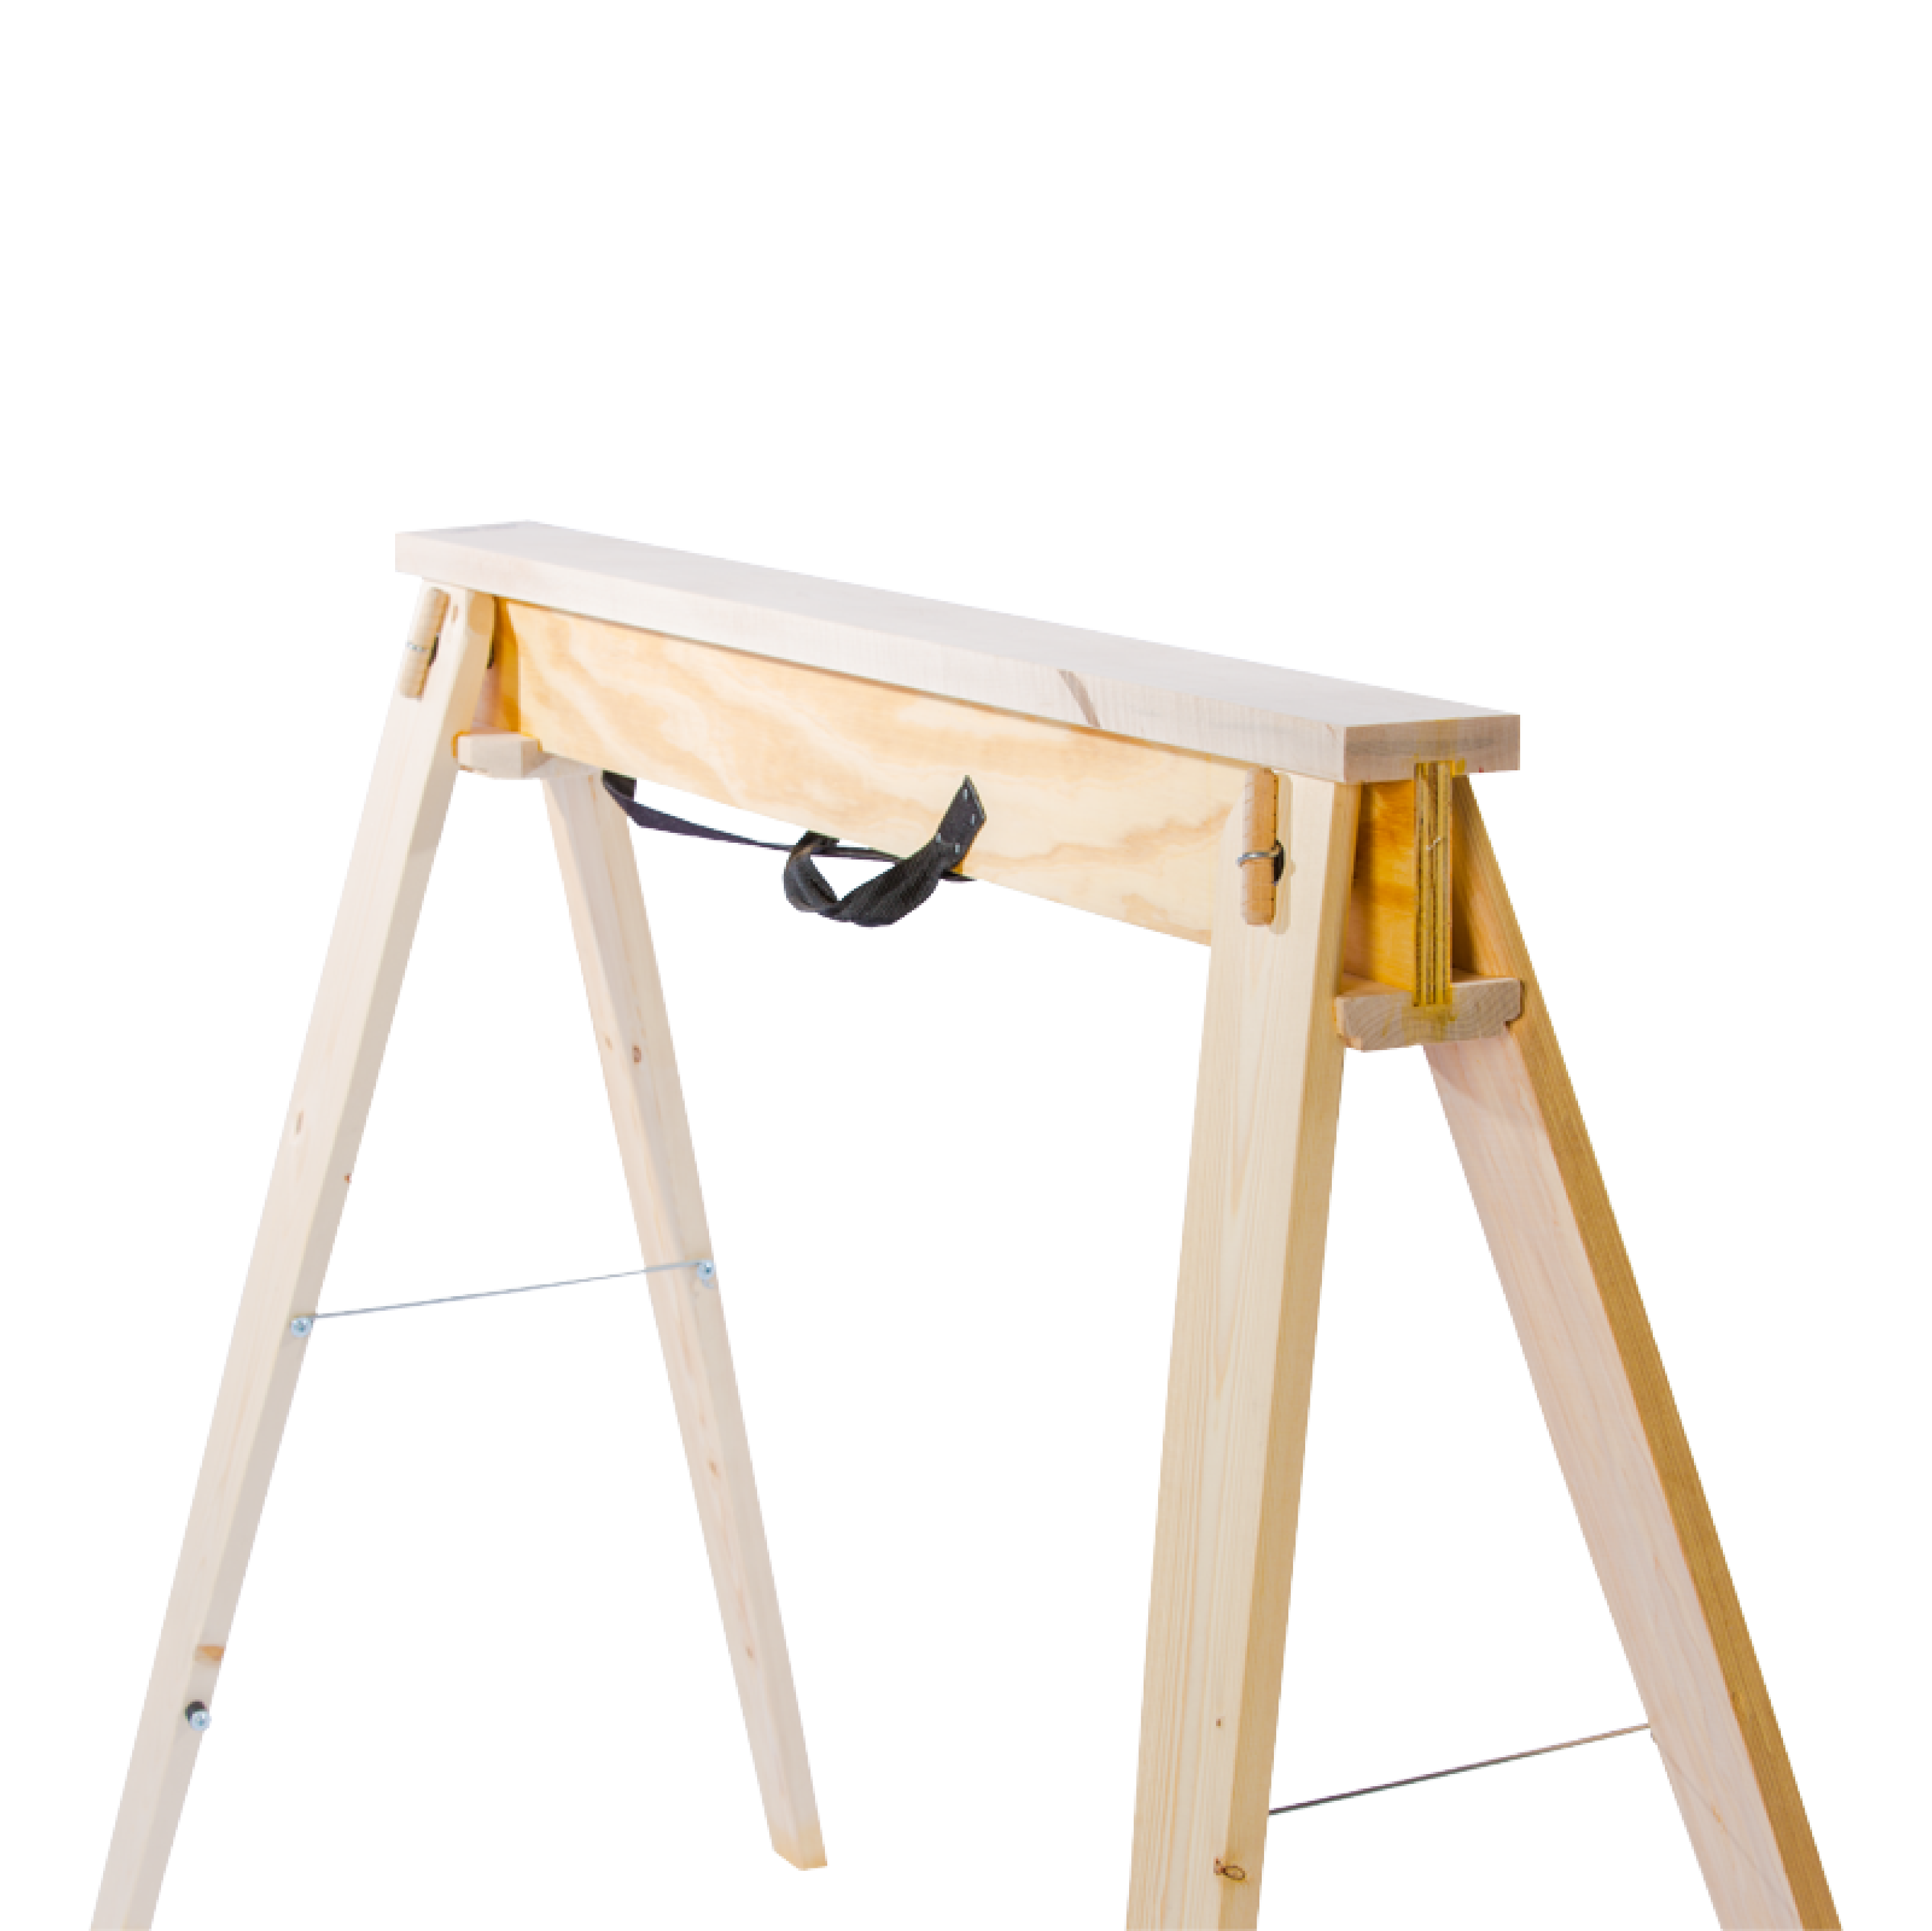 Hide-A-Horse Single Folding Sawhorse Front